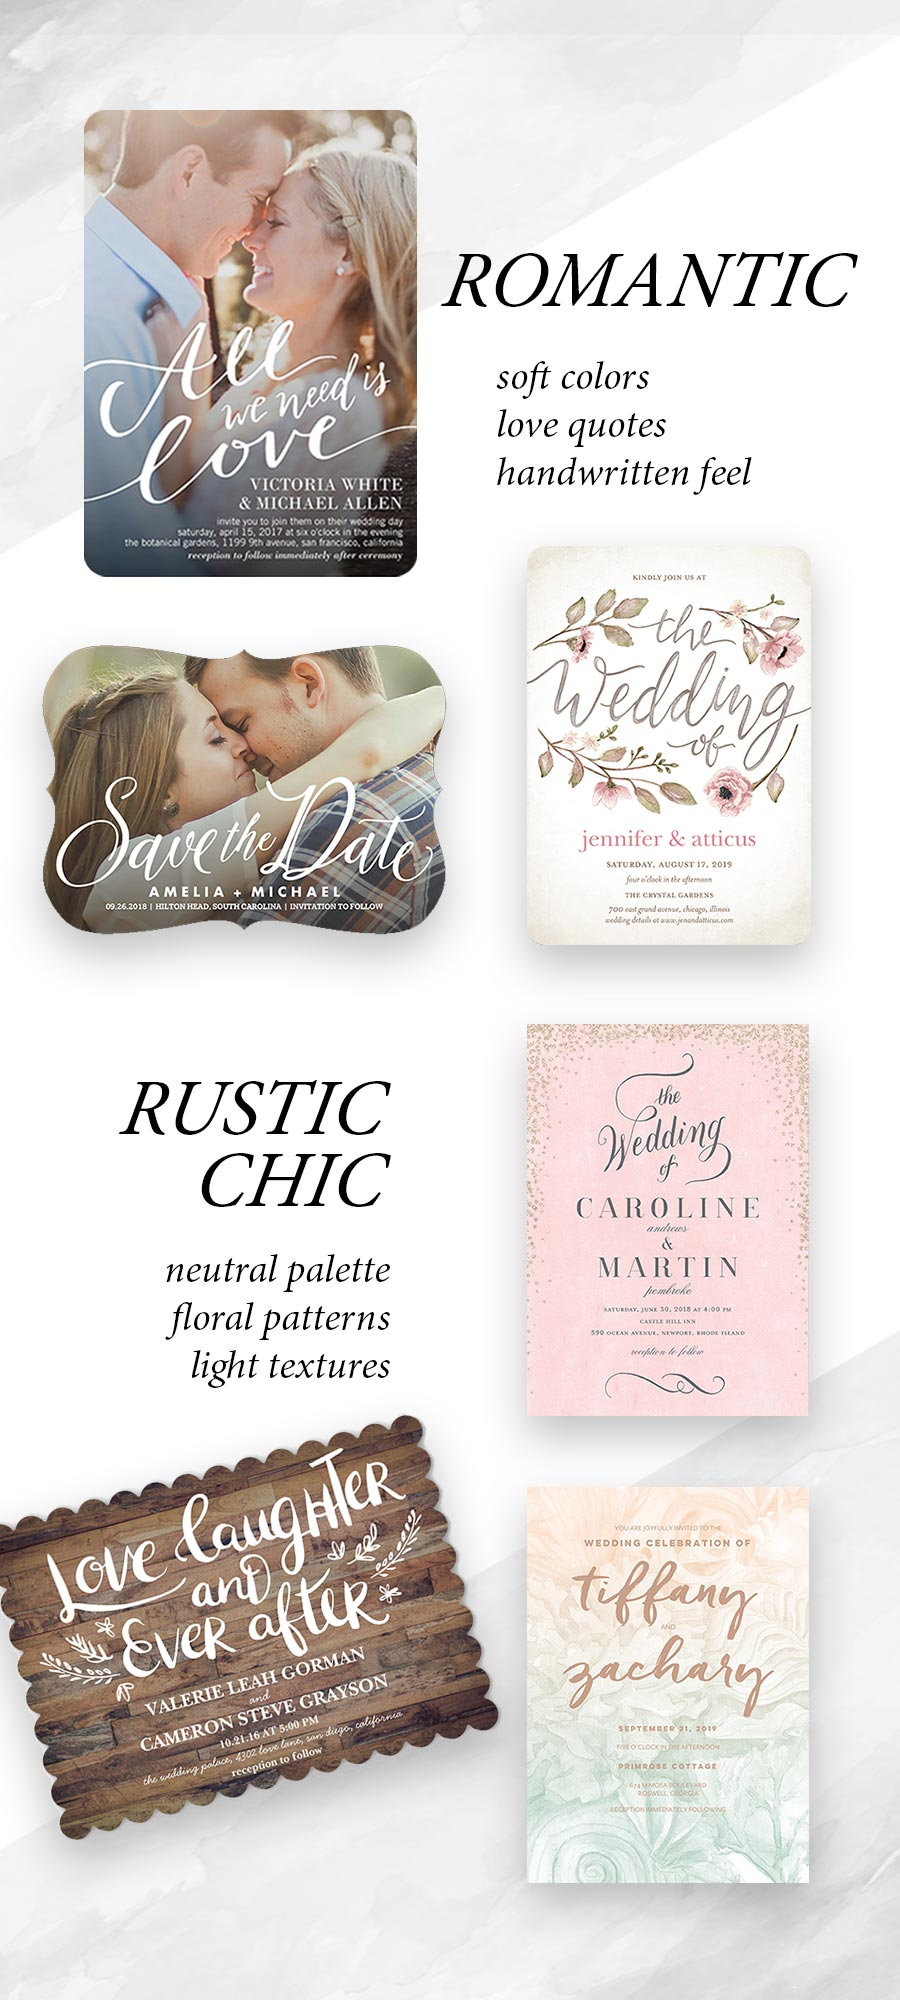 shutterfly wedding invitation save the date cards romantic rustic chic vintage setting wedding styles